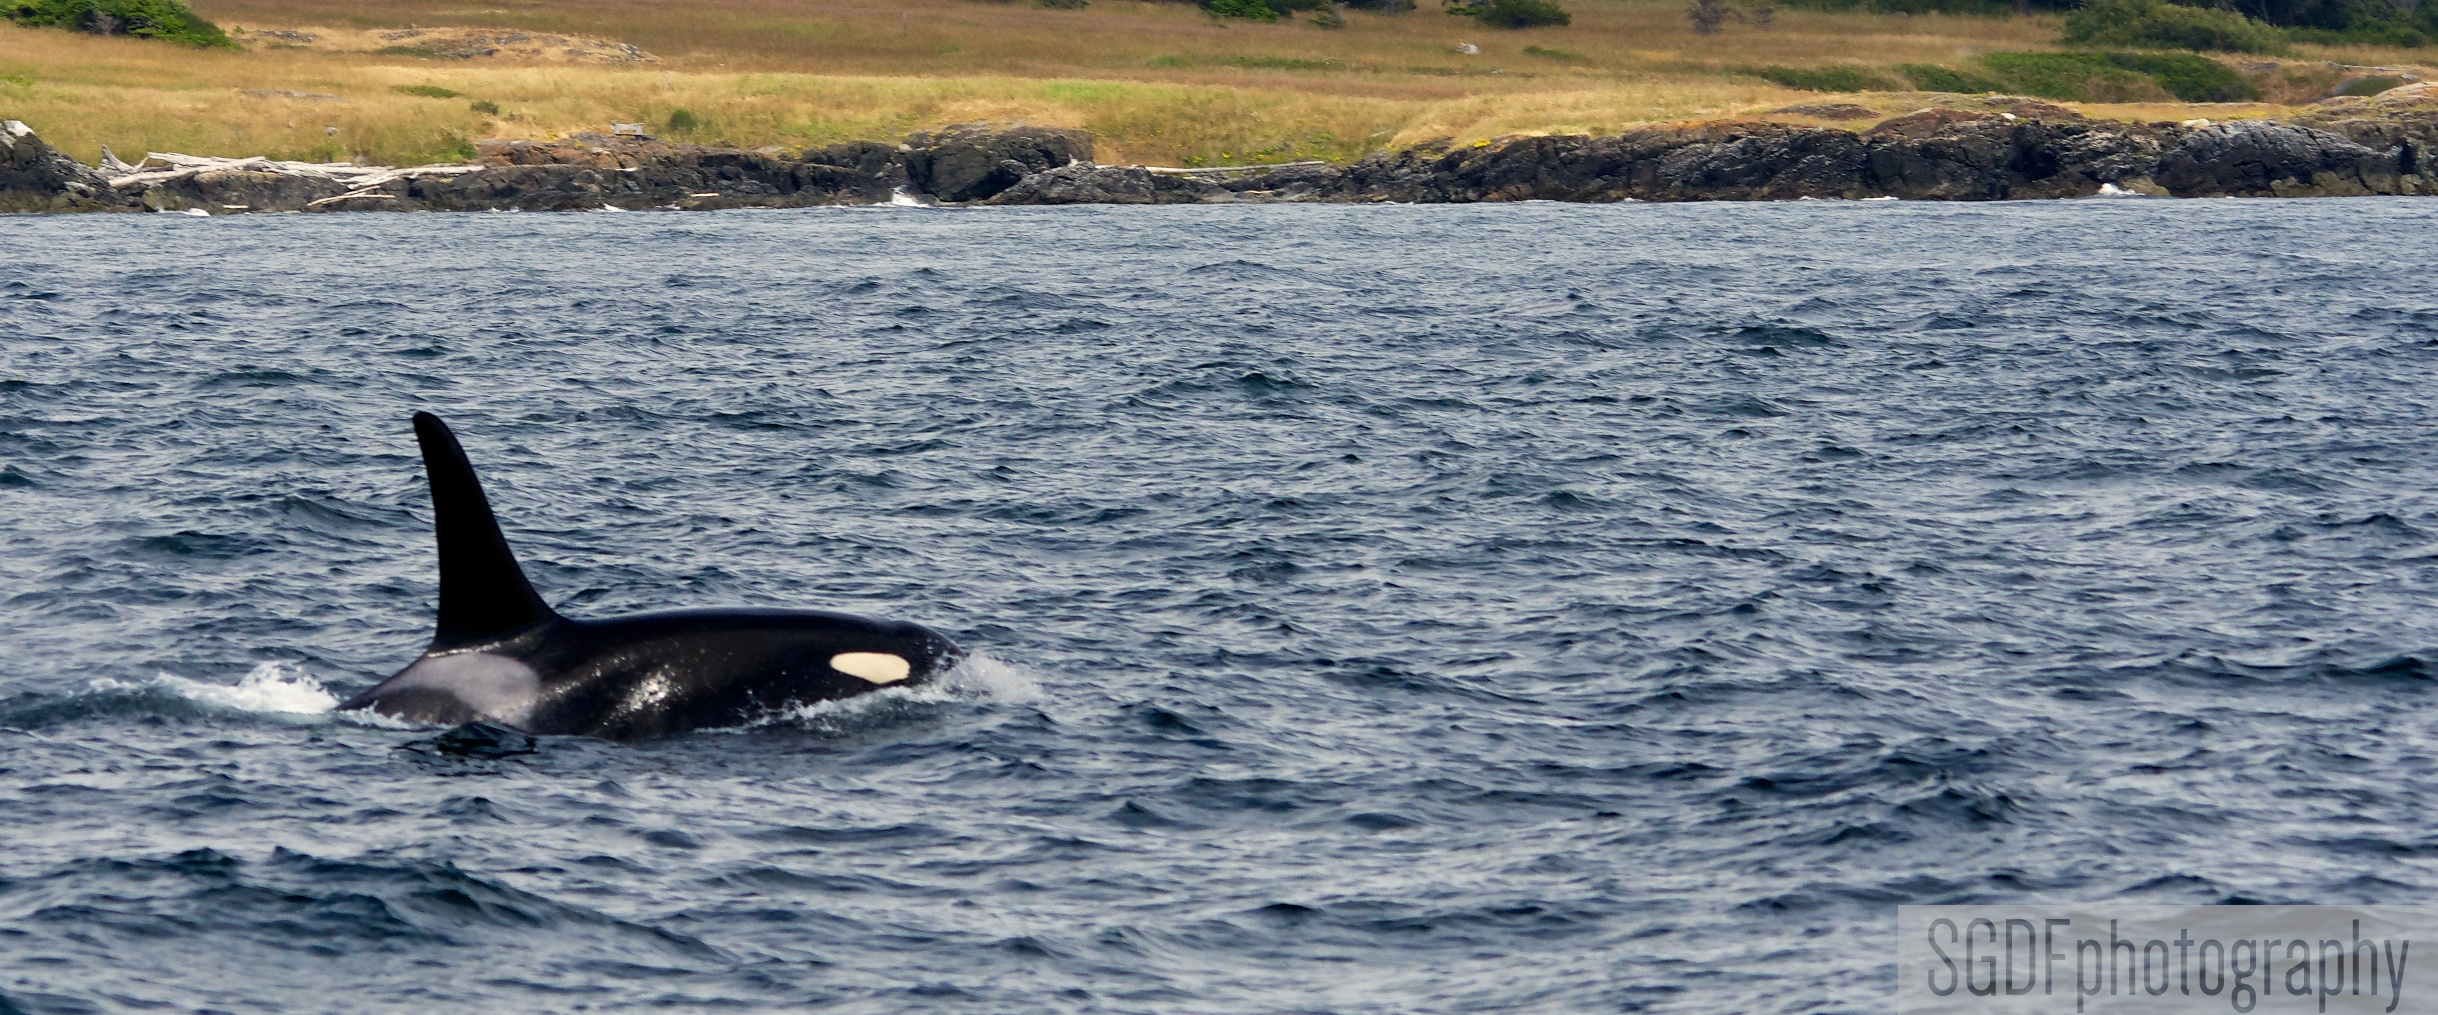 Another Male Orca (W).jpg